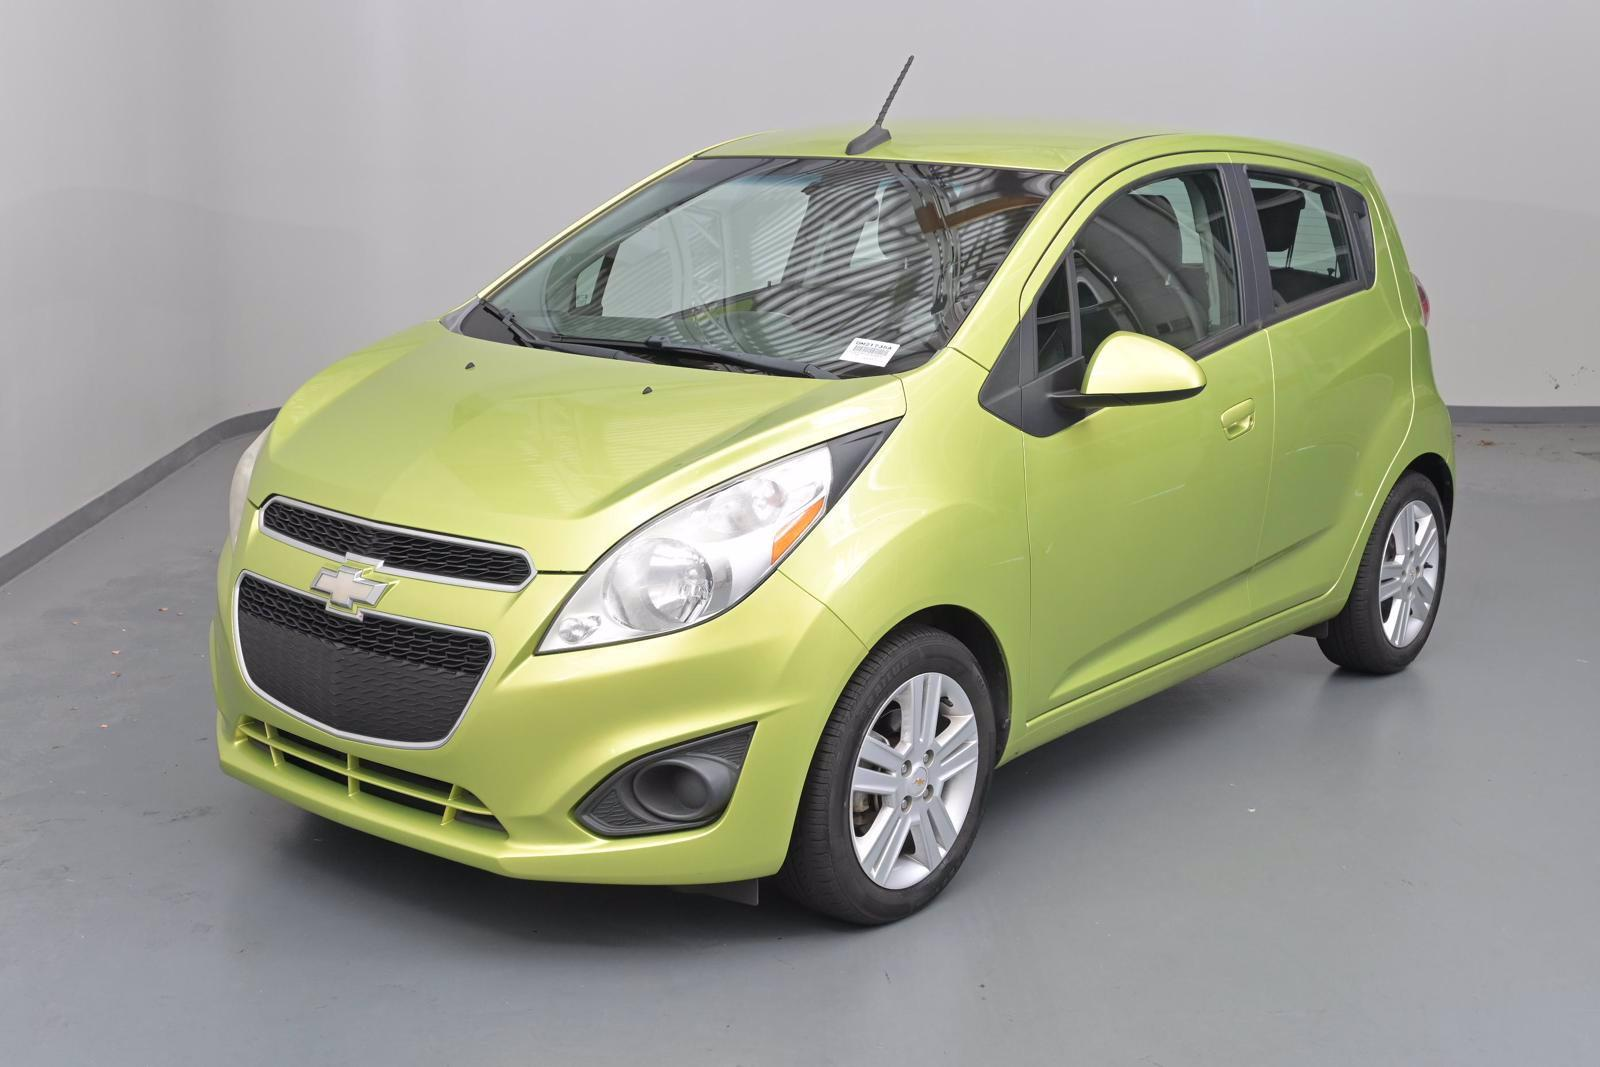 2013 Chevrolet Spark Vehicle Photo in Cary, NC 27511